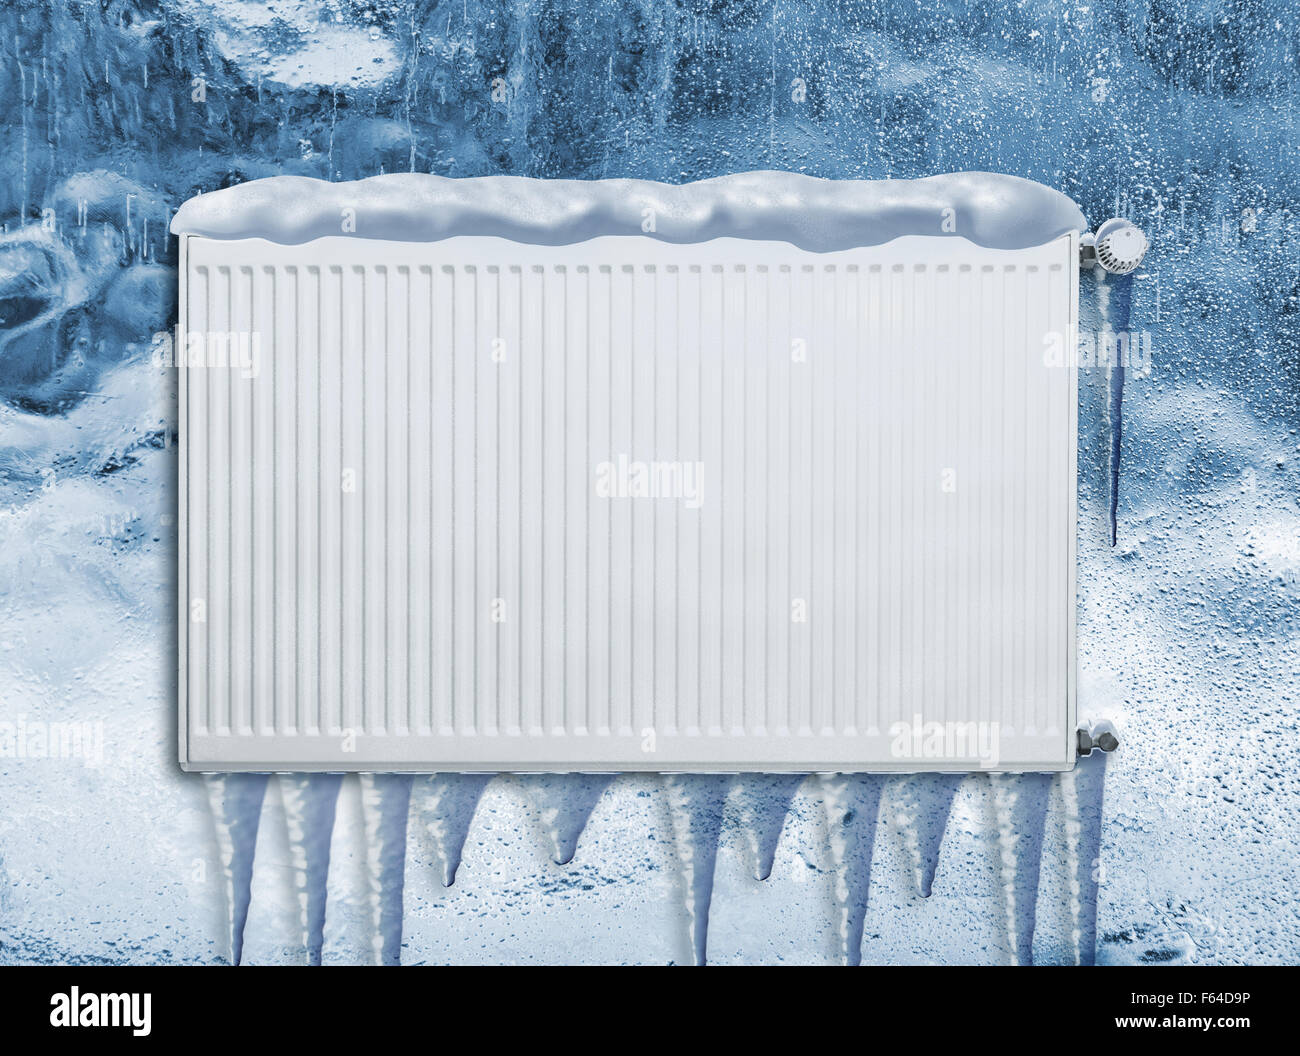 Frozen heating radiator outside in winter covered with snow - Stock Image